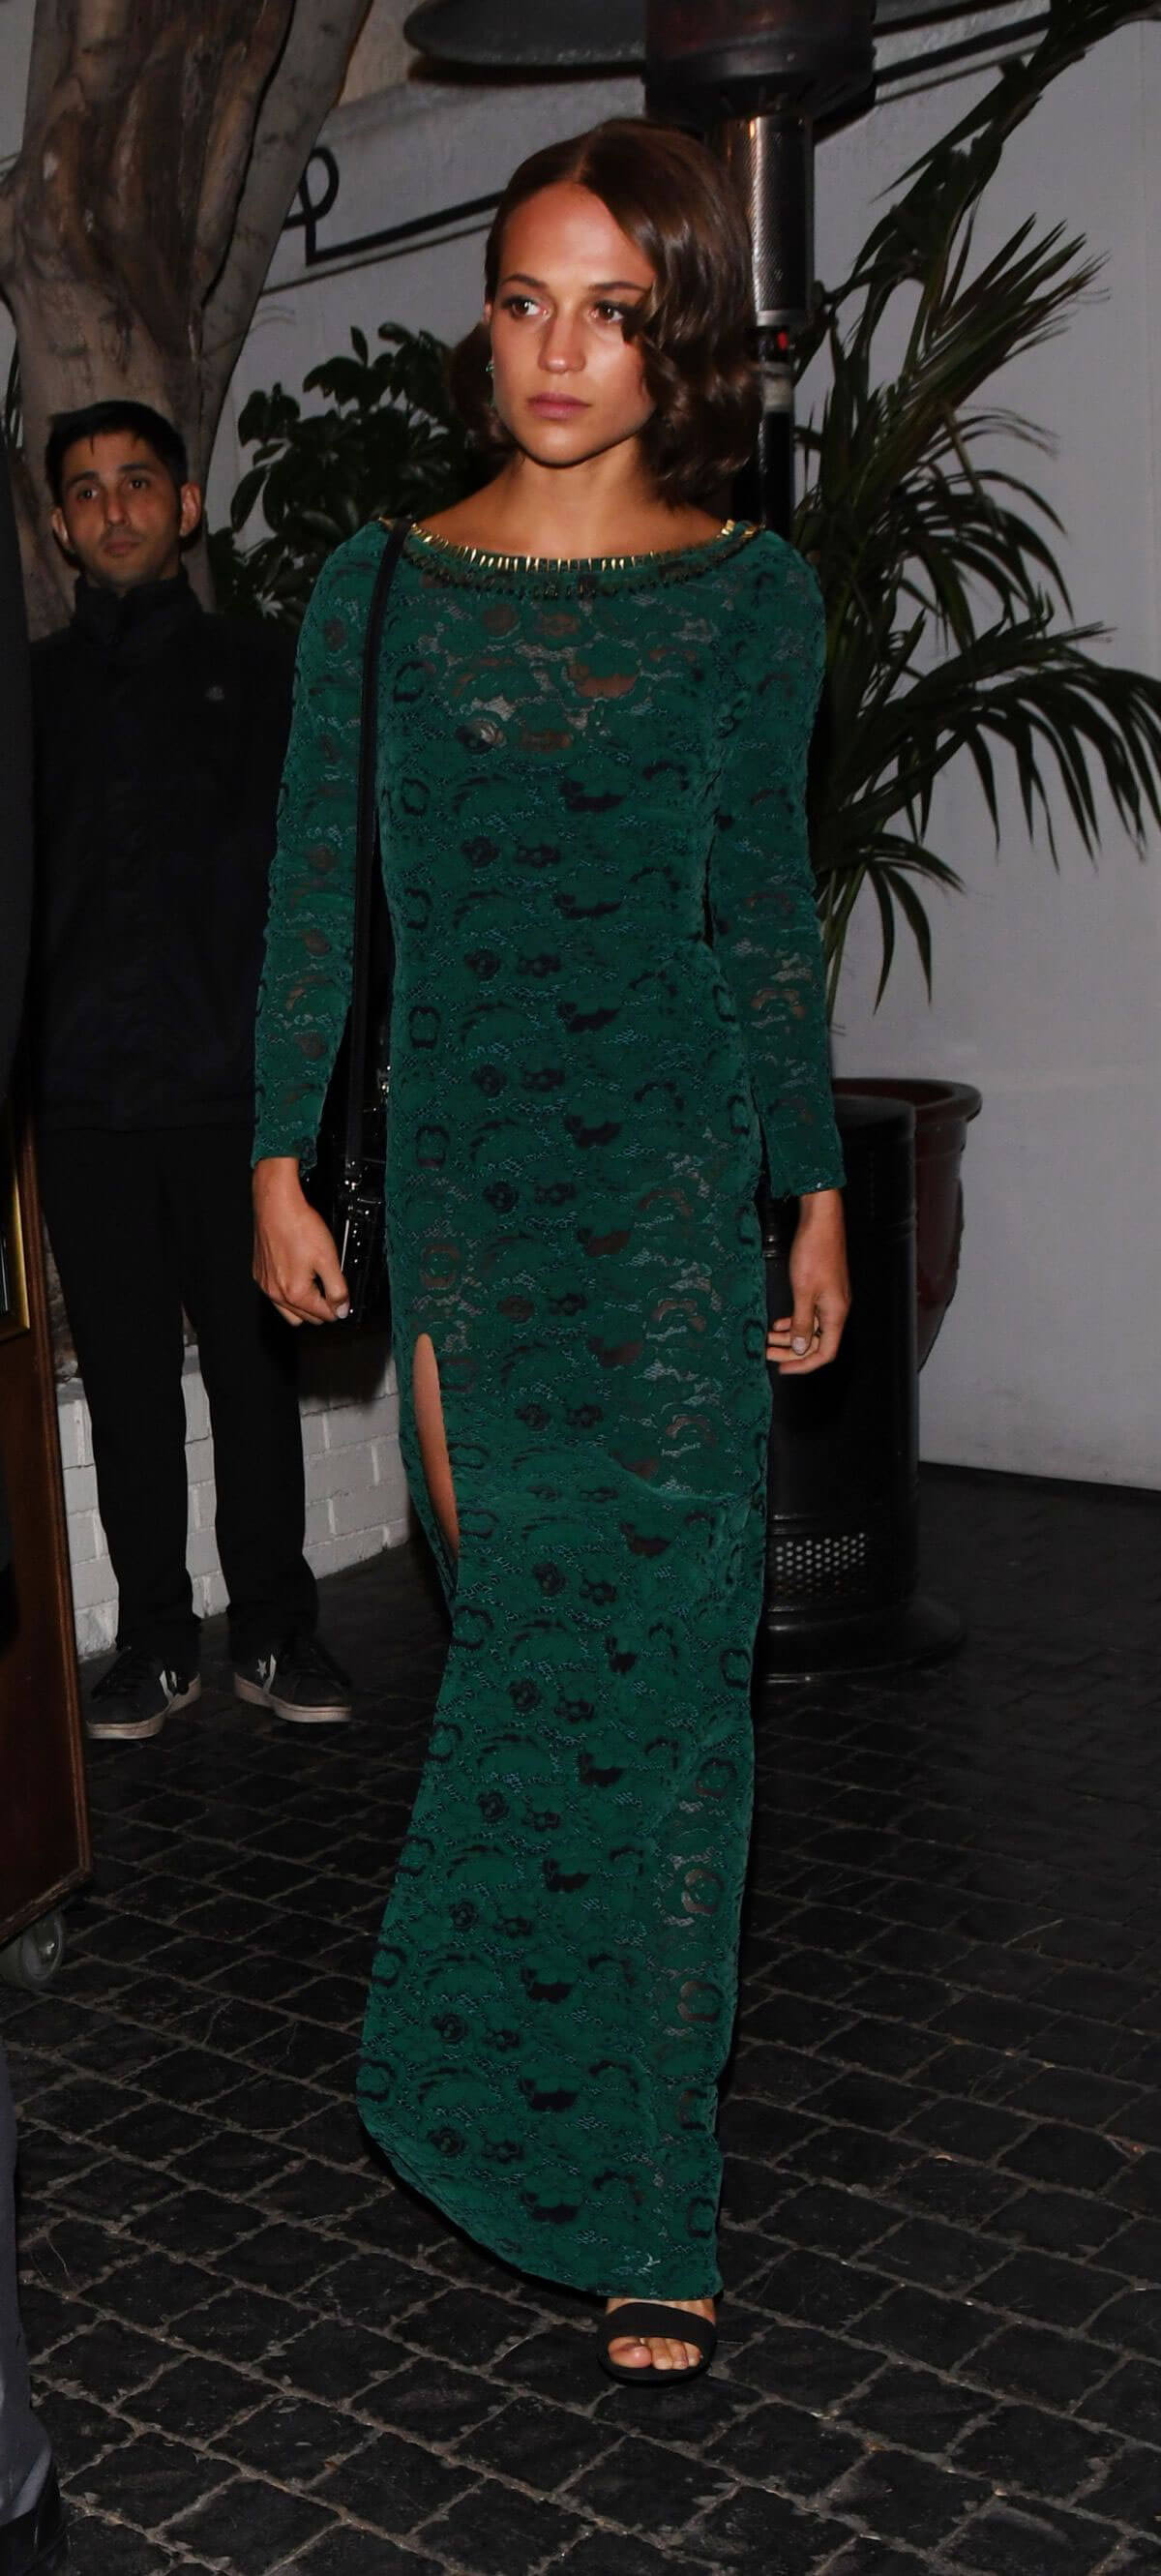 Alicia Vikander Stills at Chateau Marmont Hotel in West Hollywood